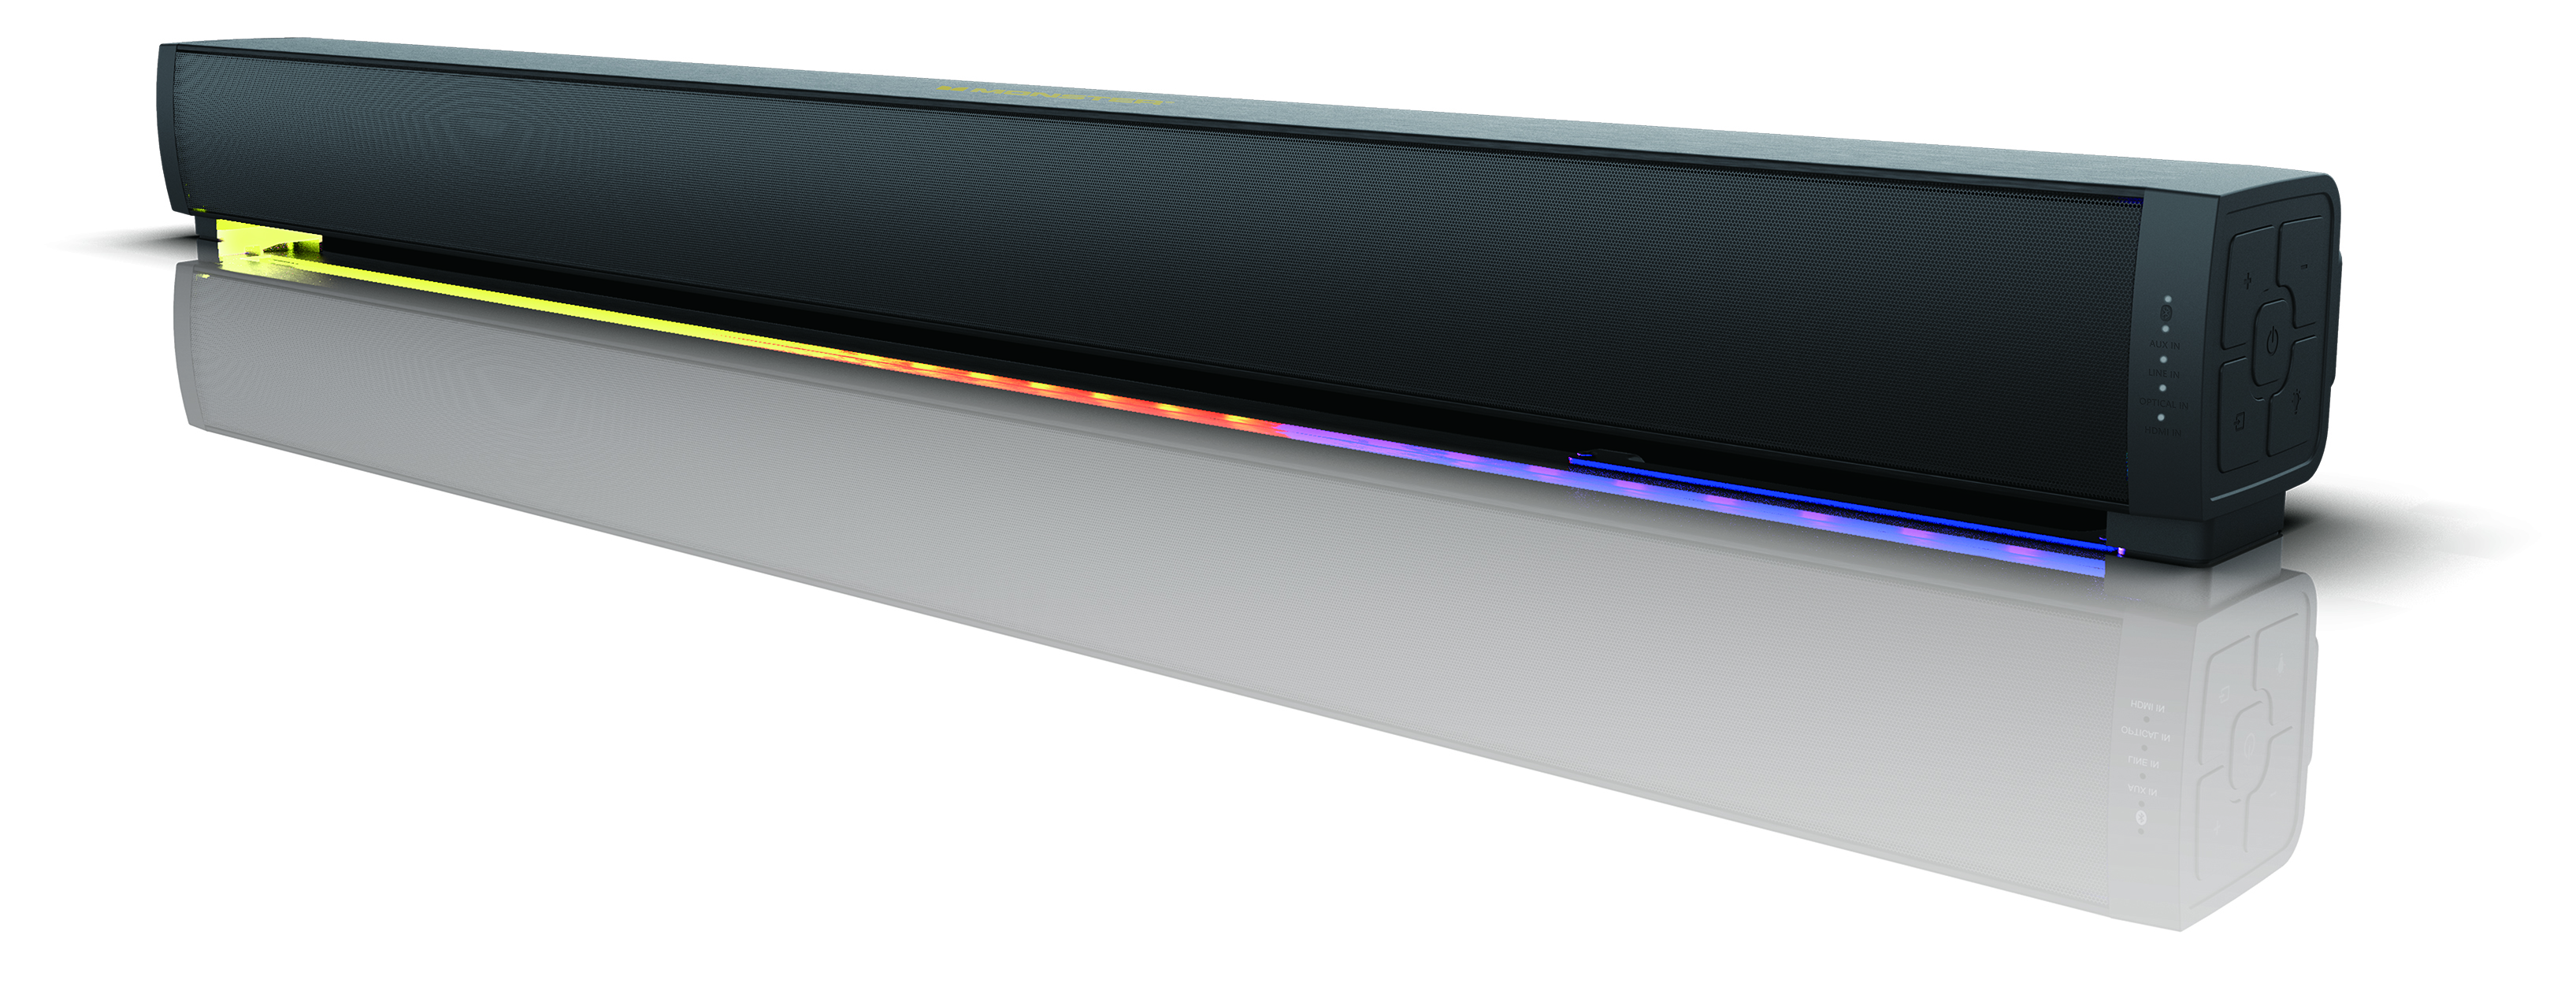 """MONSTER, 37"""" HOME THEATER BLUETOOTH SOUNDBAR WITH LIGHT SHOW AND LED ROOM ILLUMINATION, (MSB3786-EO)"""